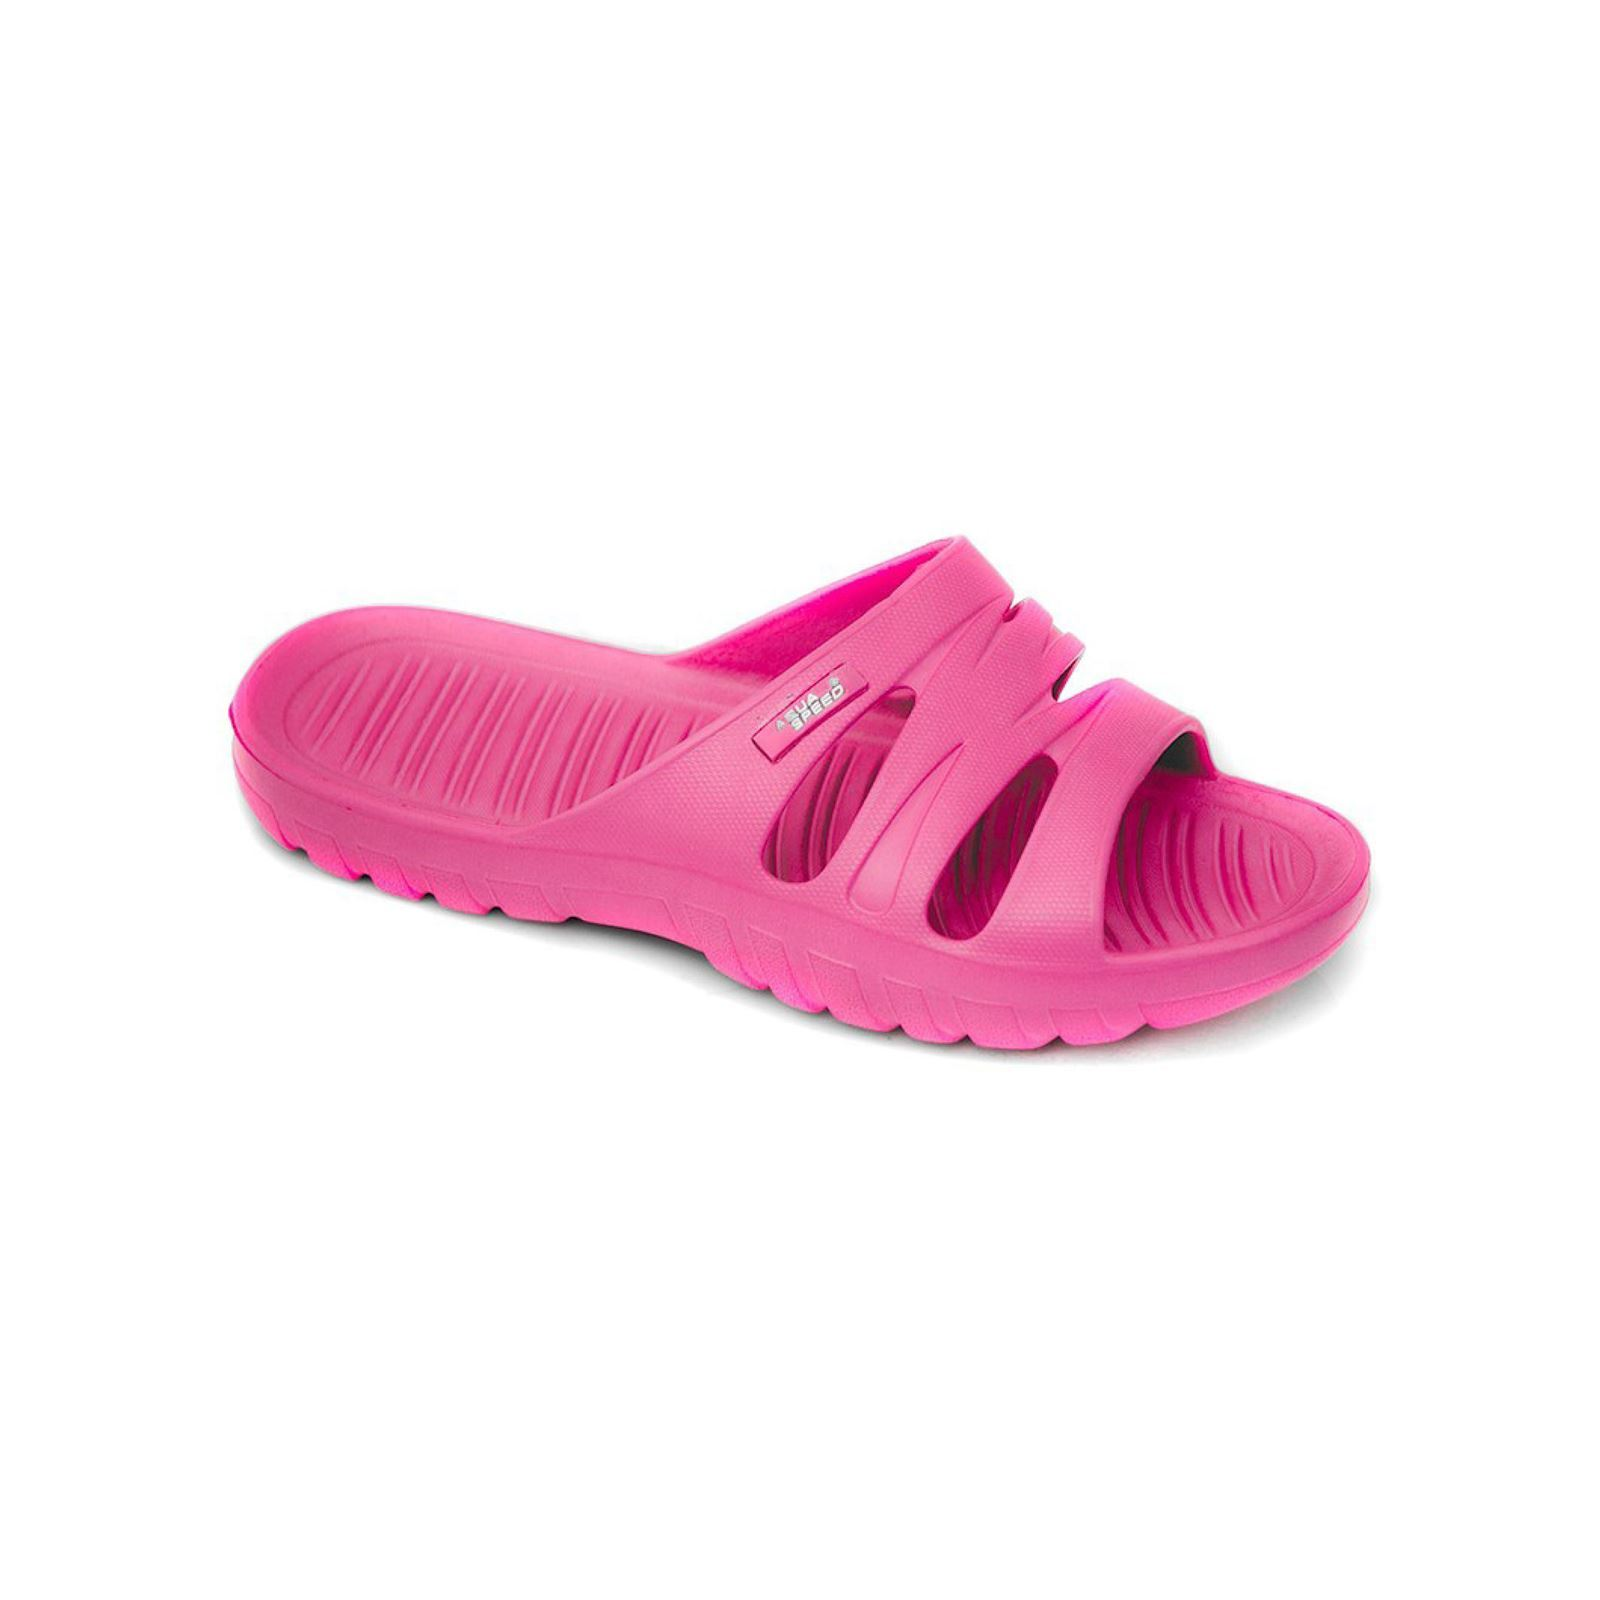 Aquaspeed vena sandales de piscine rose brandalley for Sandales de piscine